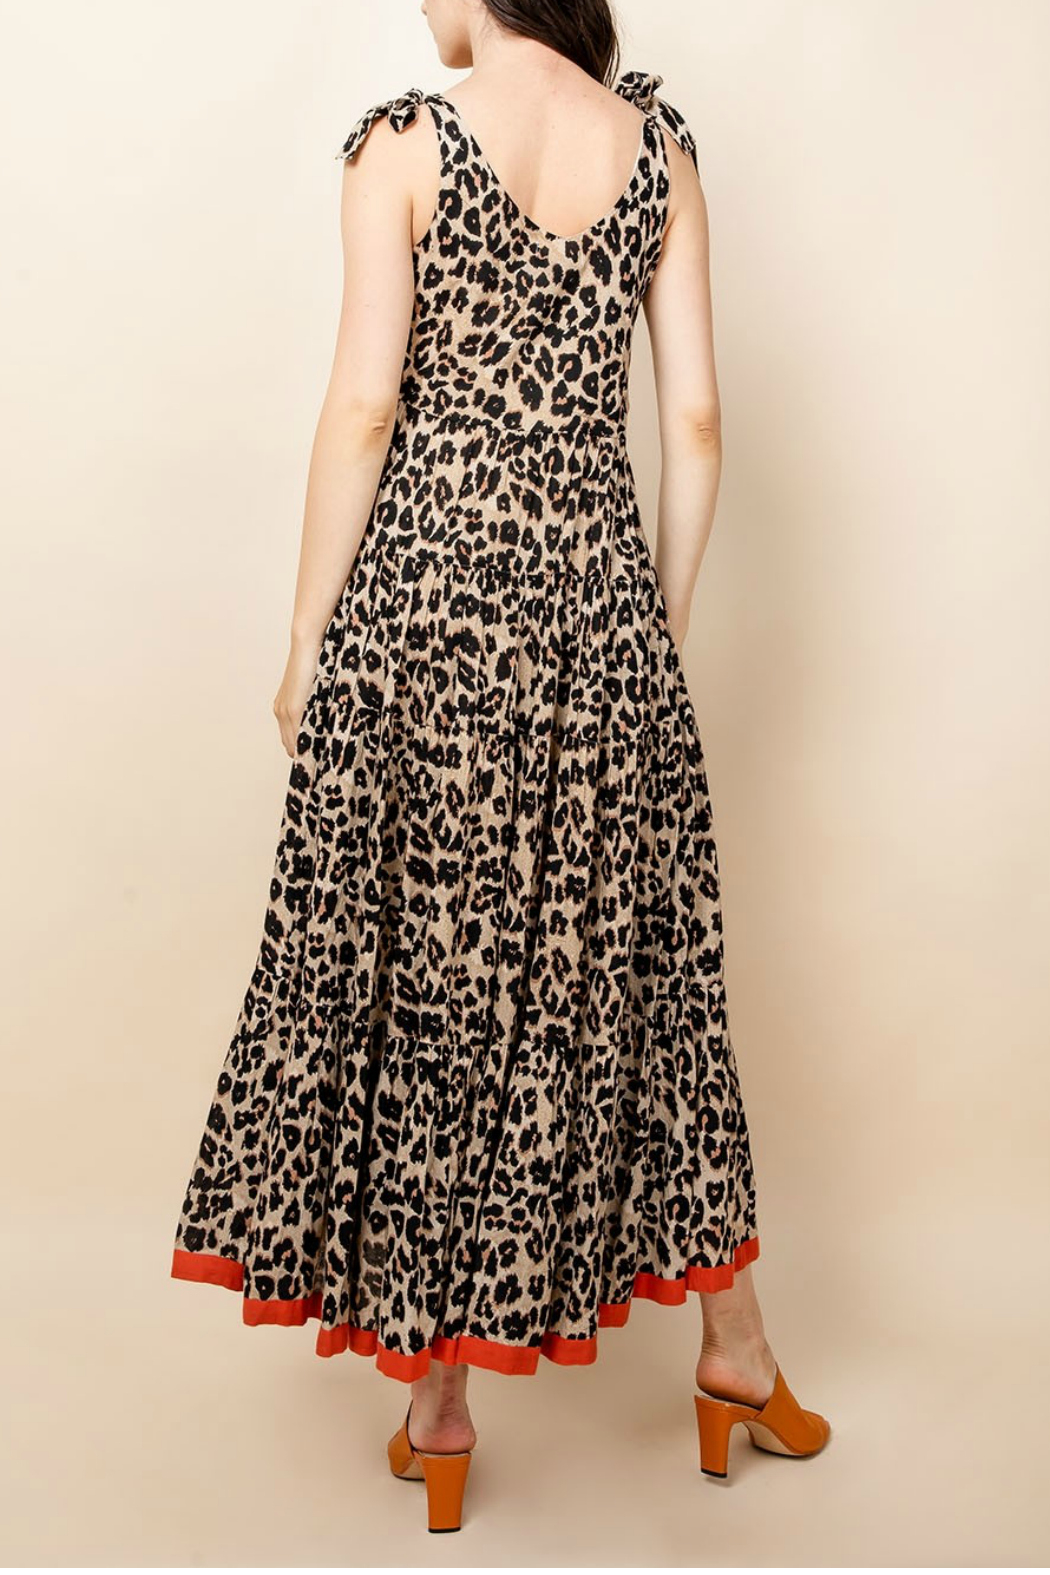 Thml Leopard Tie Strap Dress - Front Full Image